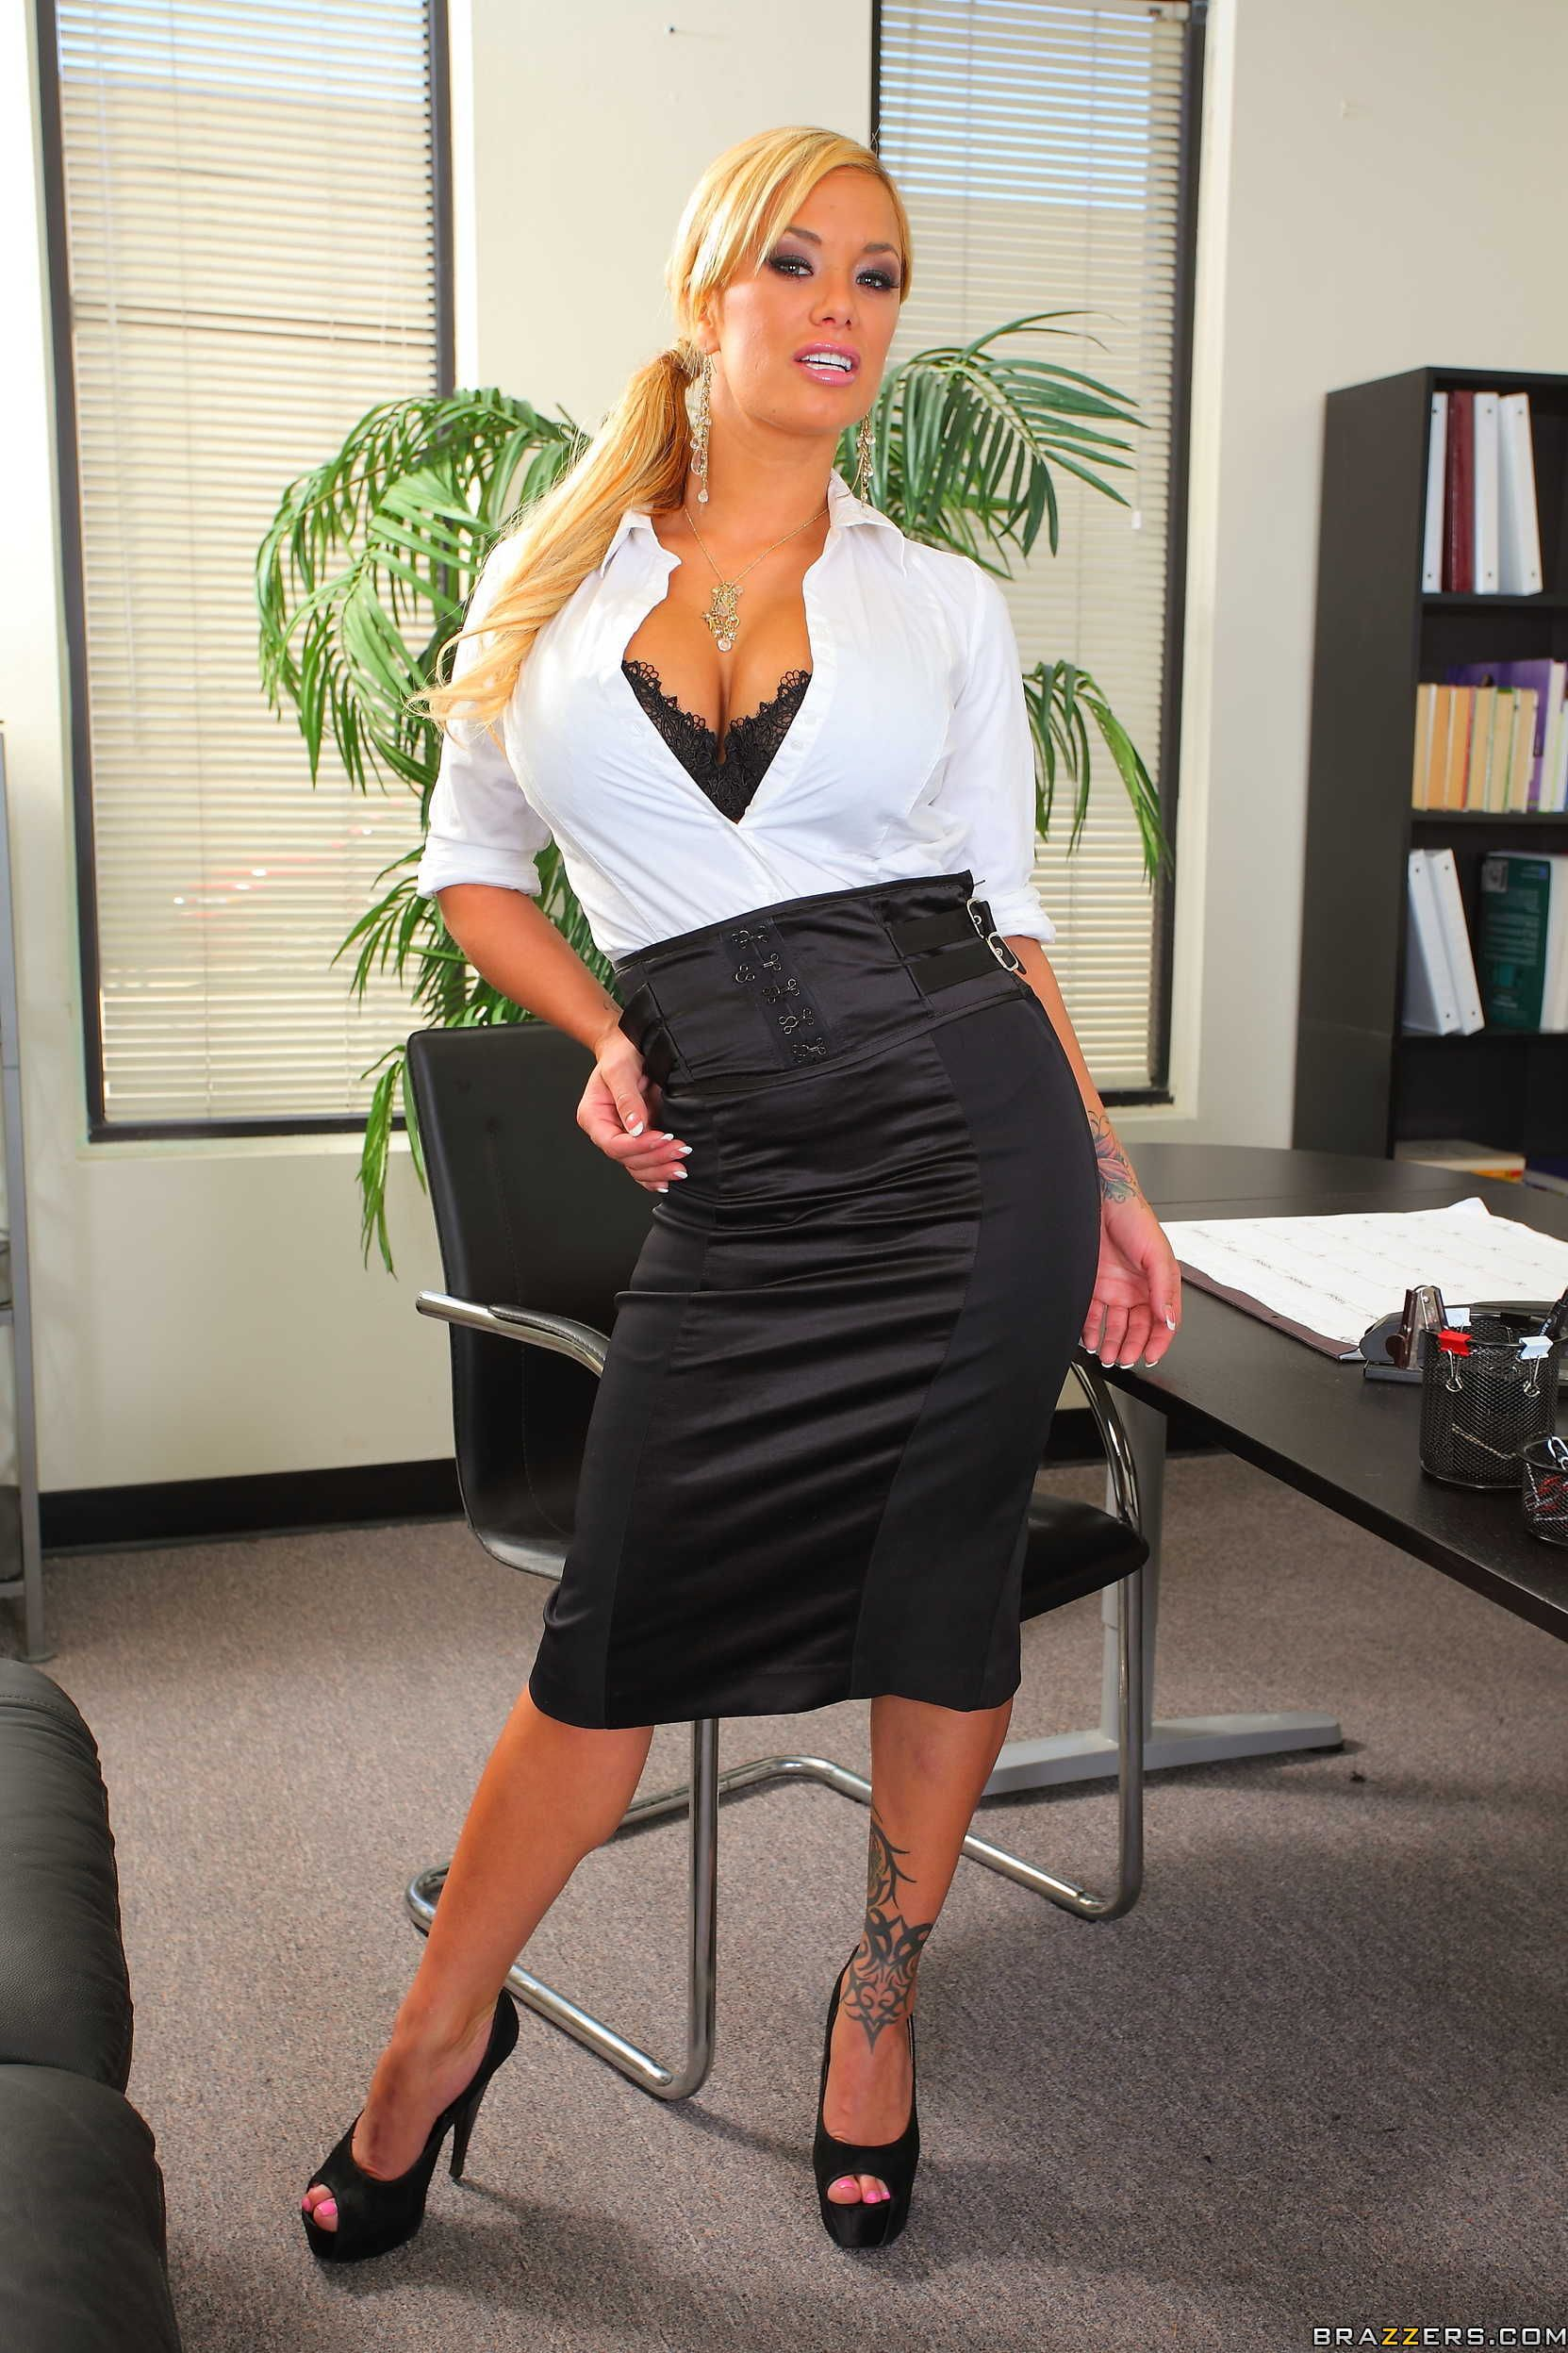 Frames For Living Room Walls Light Grey Ideas Shyla Stylez | Meanwhile In The Office I Wish Worked ...